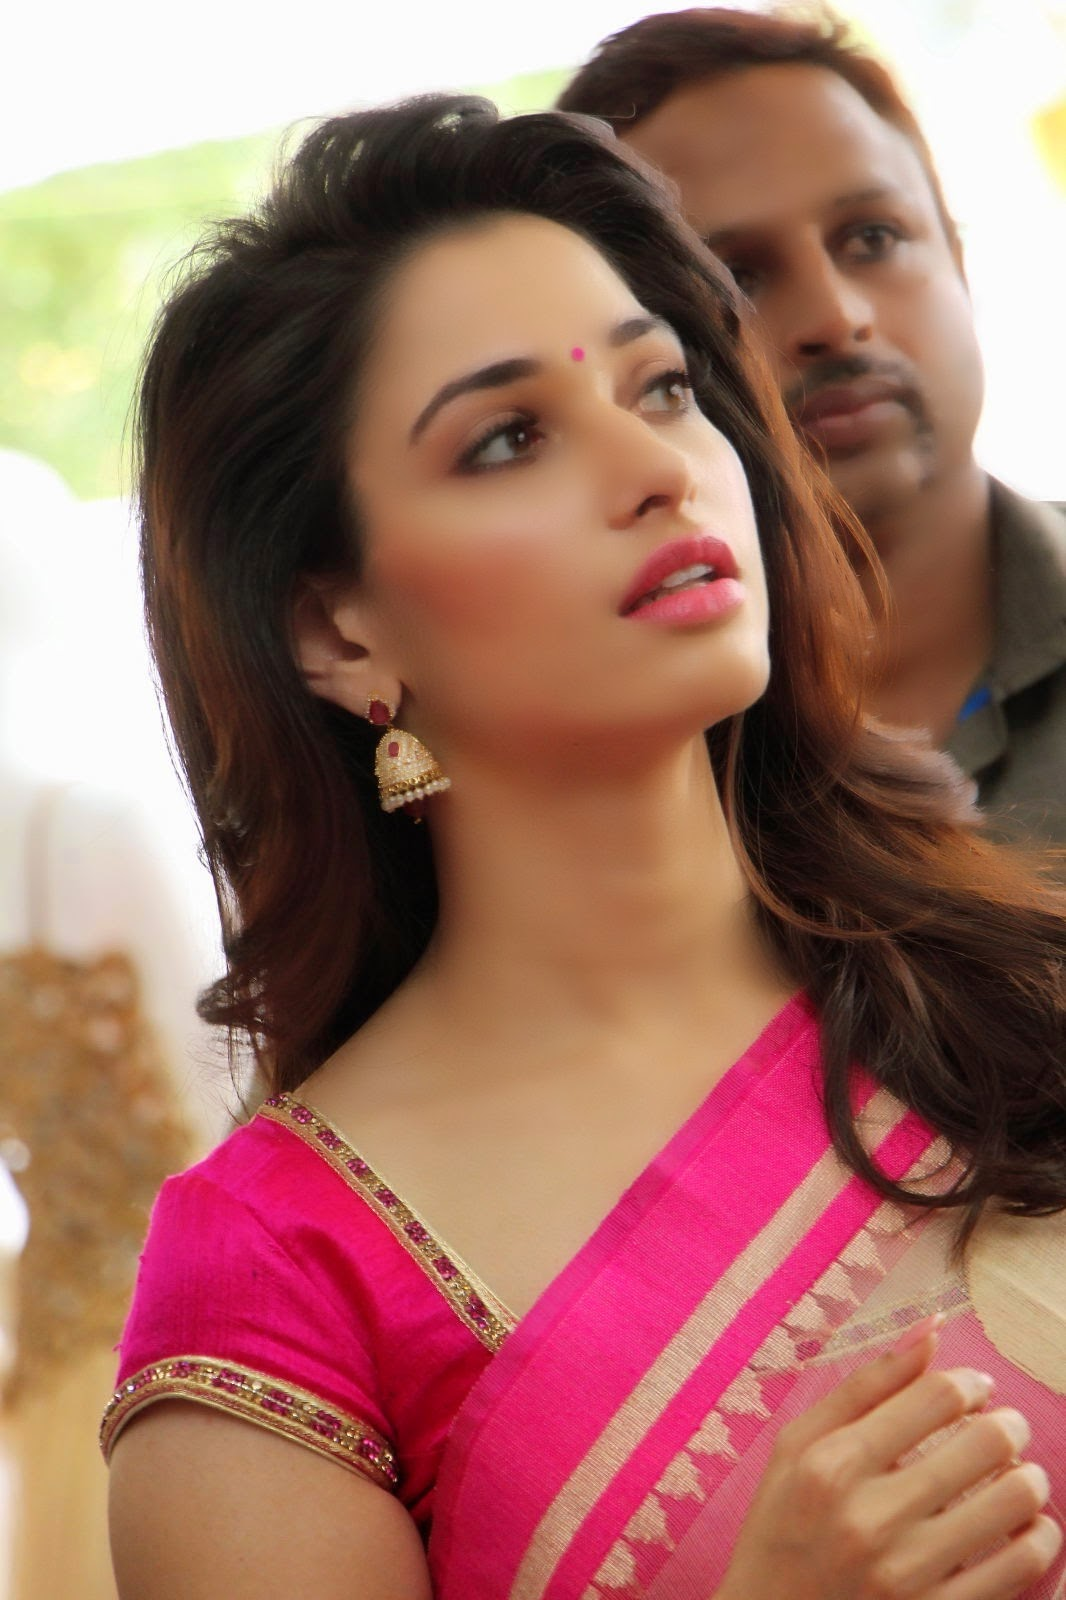 Tamanna Home: Tamanna Bhatia Looking Hot In Saree HD Wallpaper High